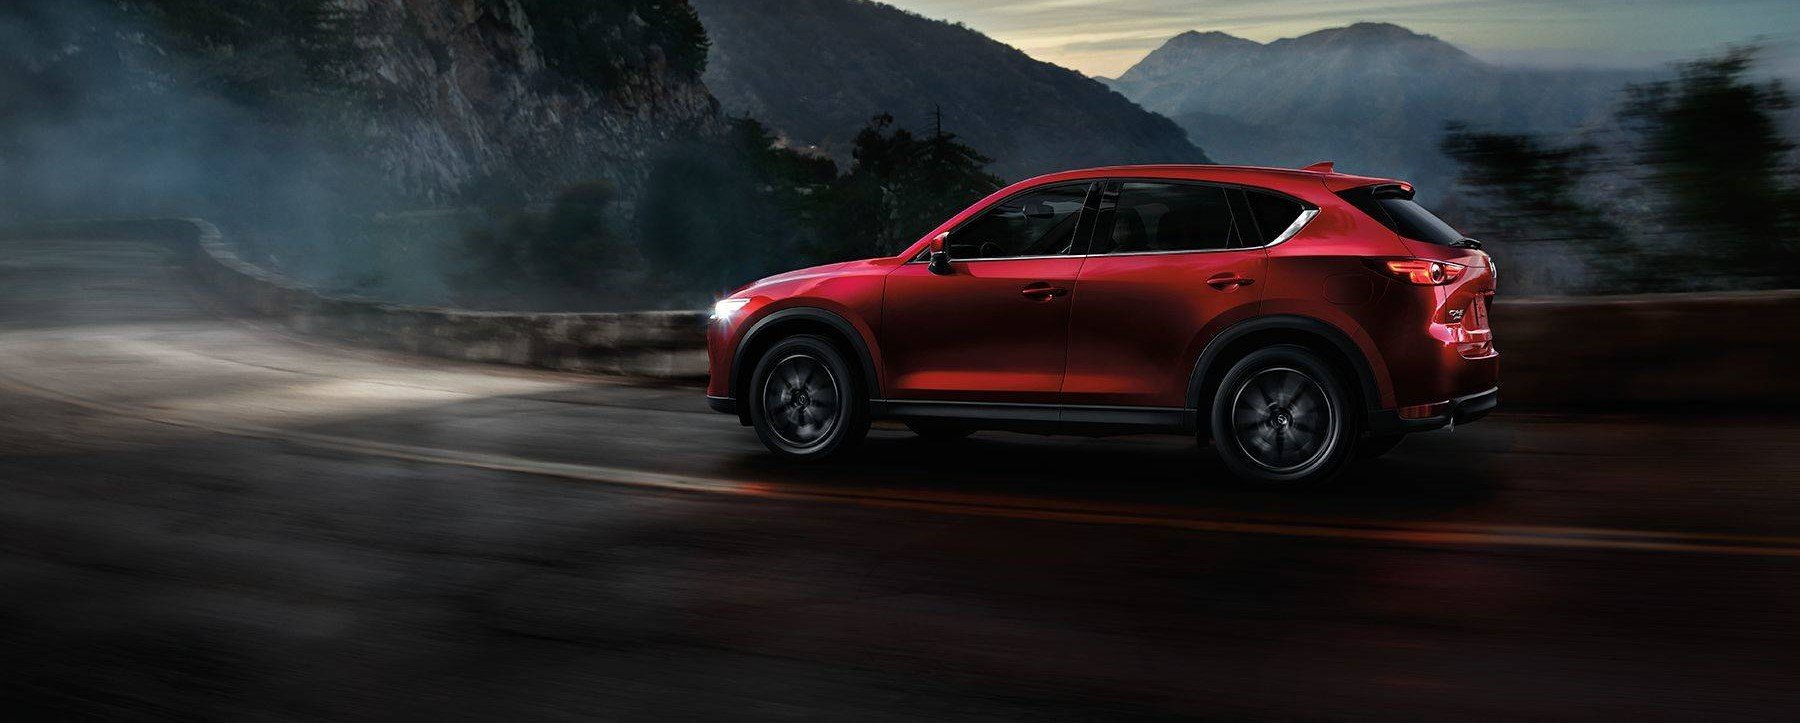 Mazda Cx 5 Price Lease Deals Pensacola Fl